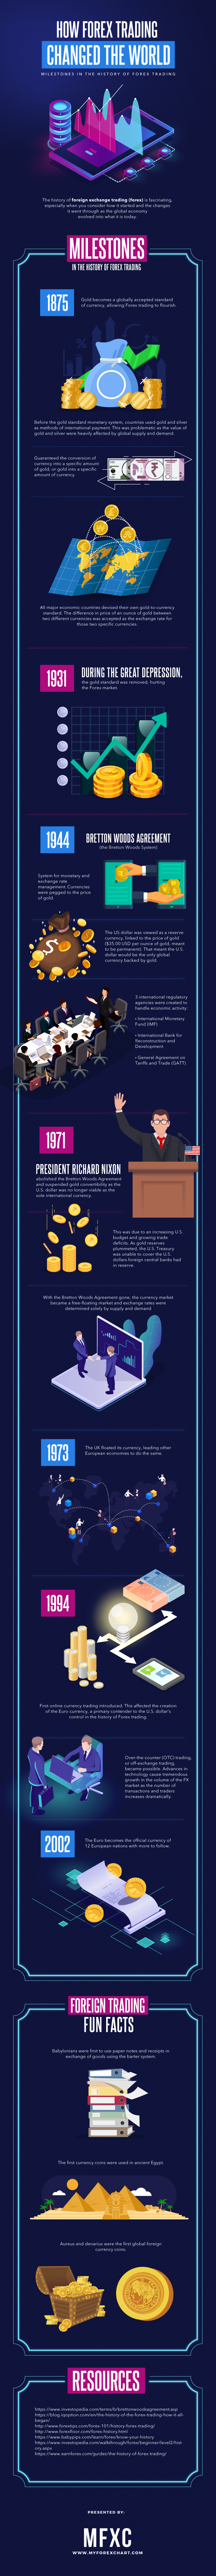 History of Forex Trading Infographic